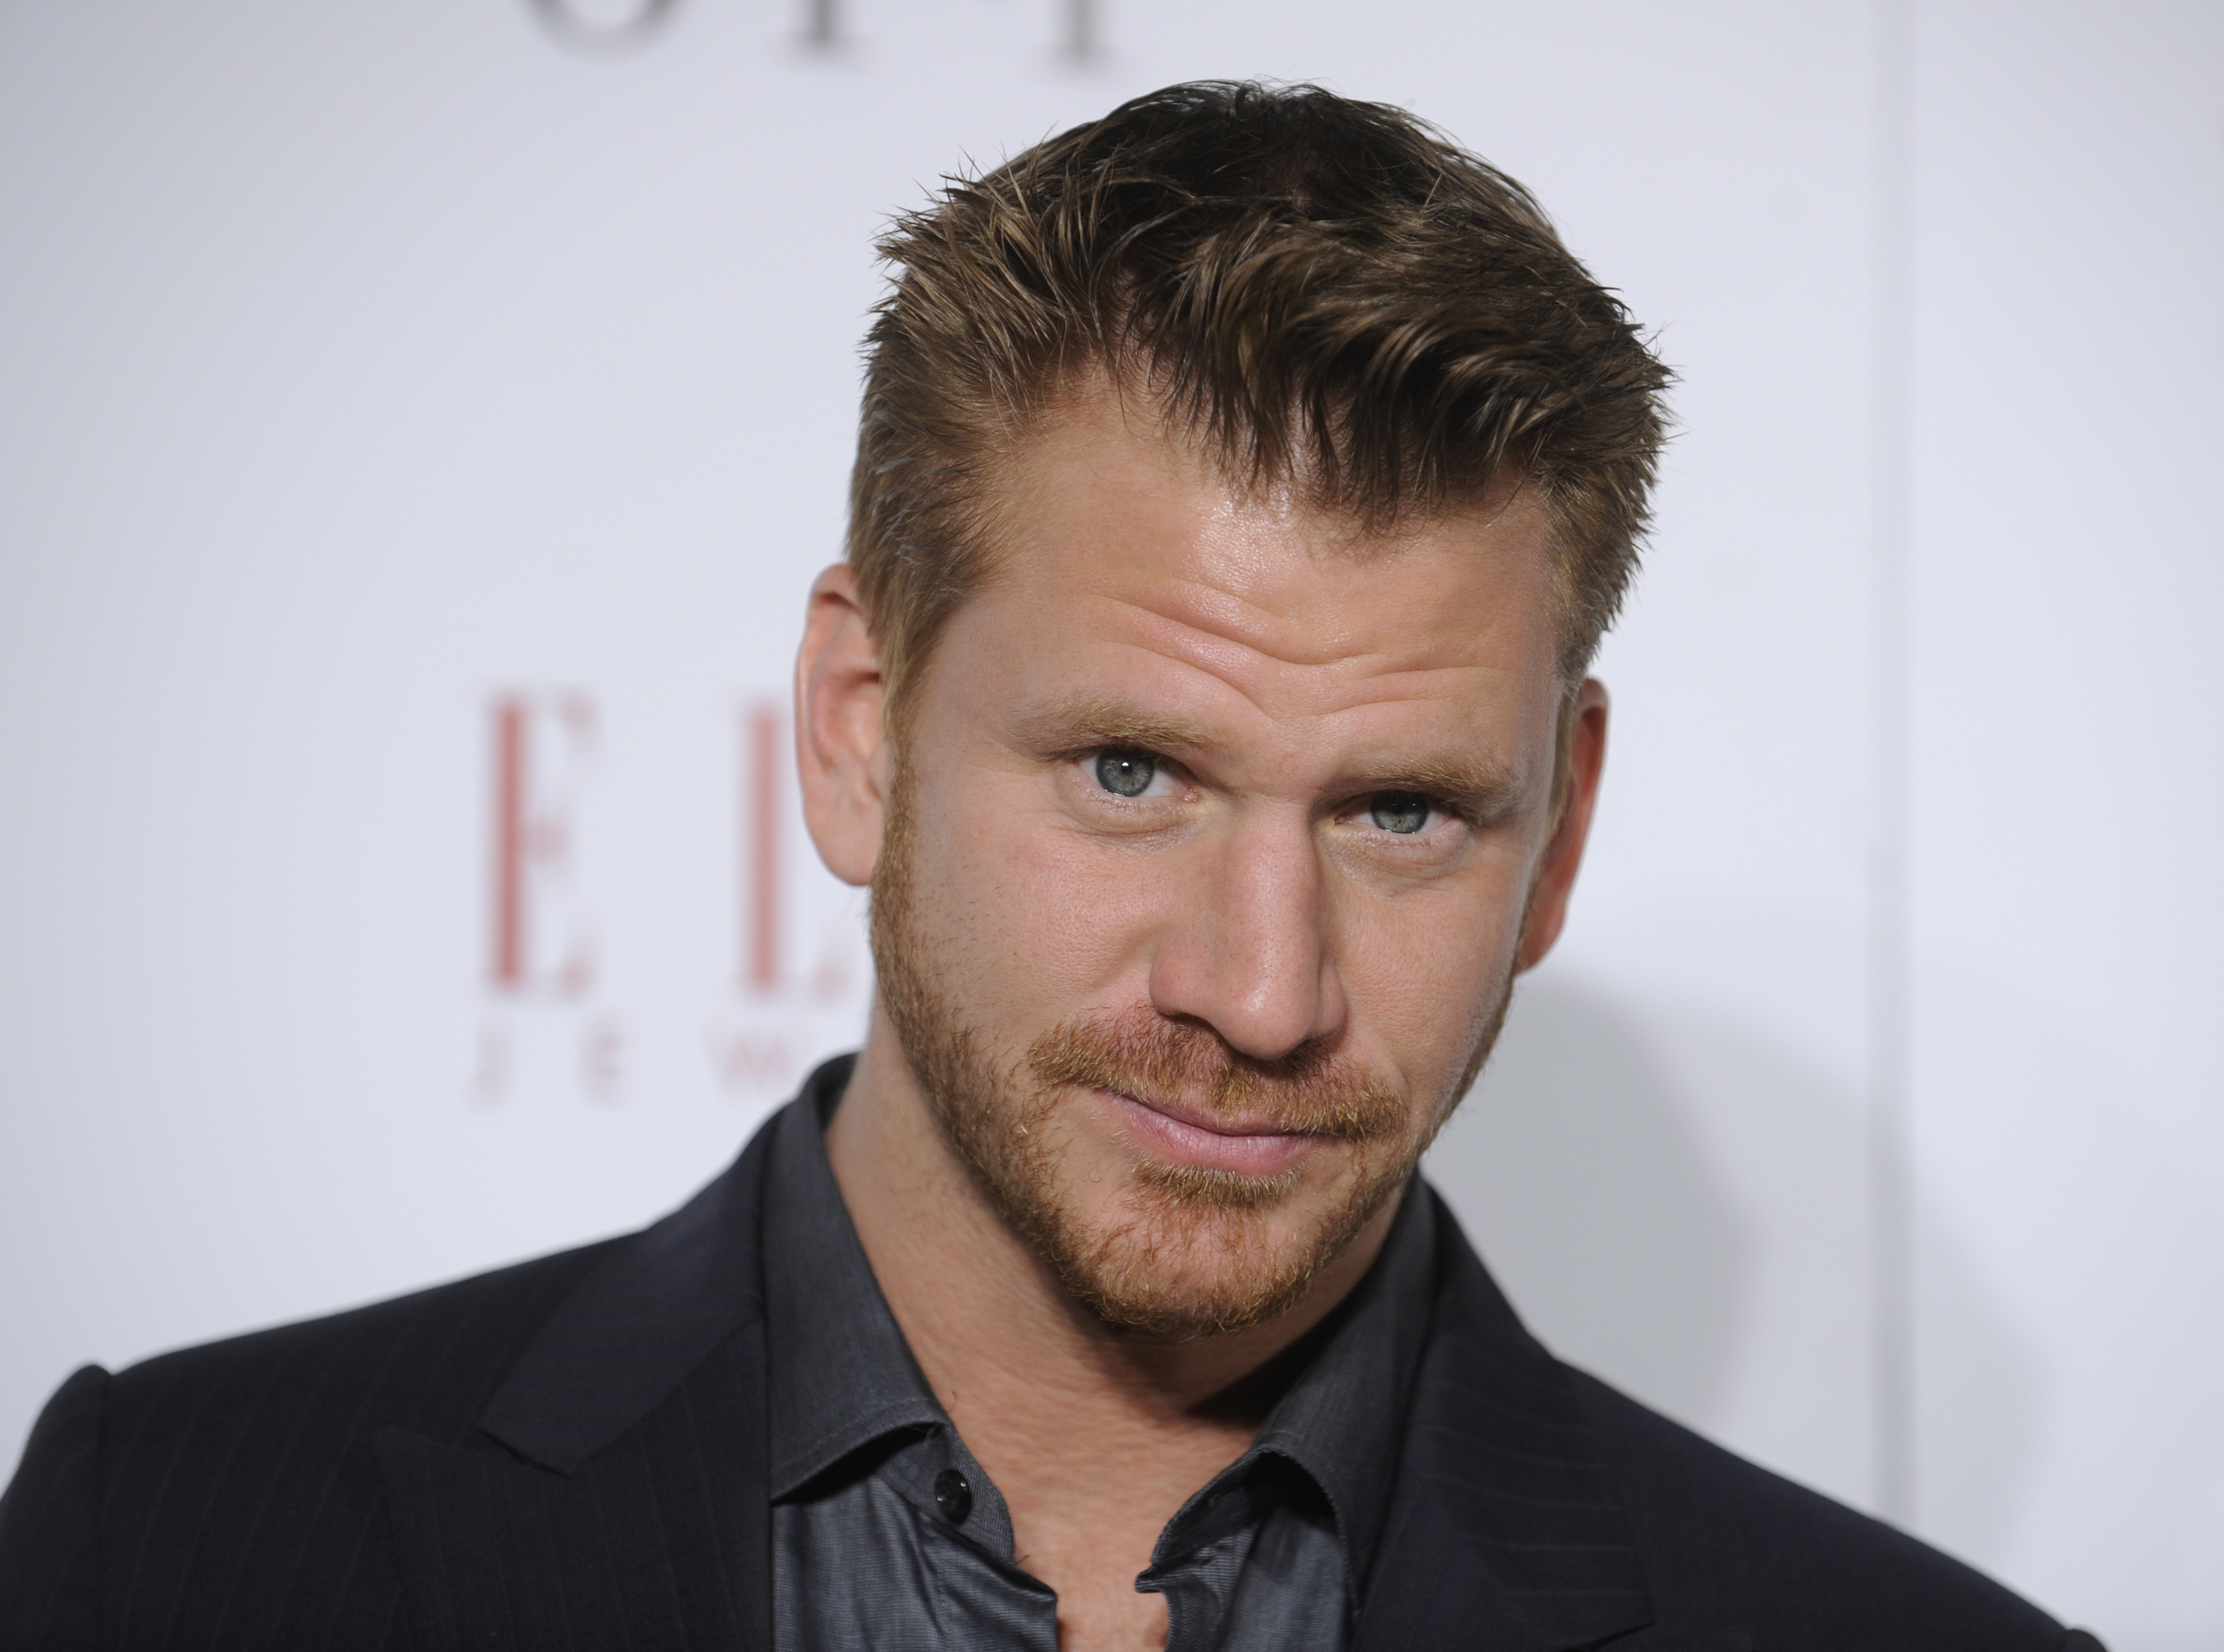 Dash Mihok hd wallpaper Wallpaper